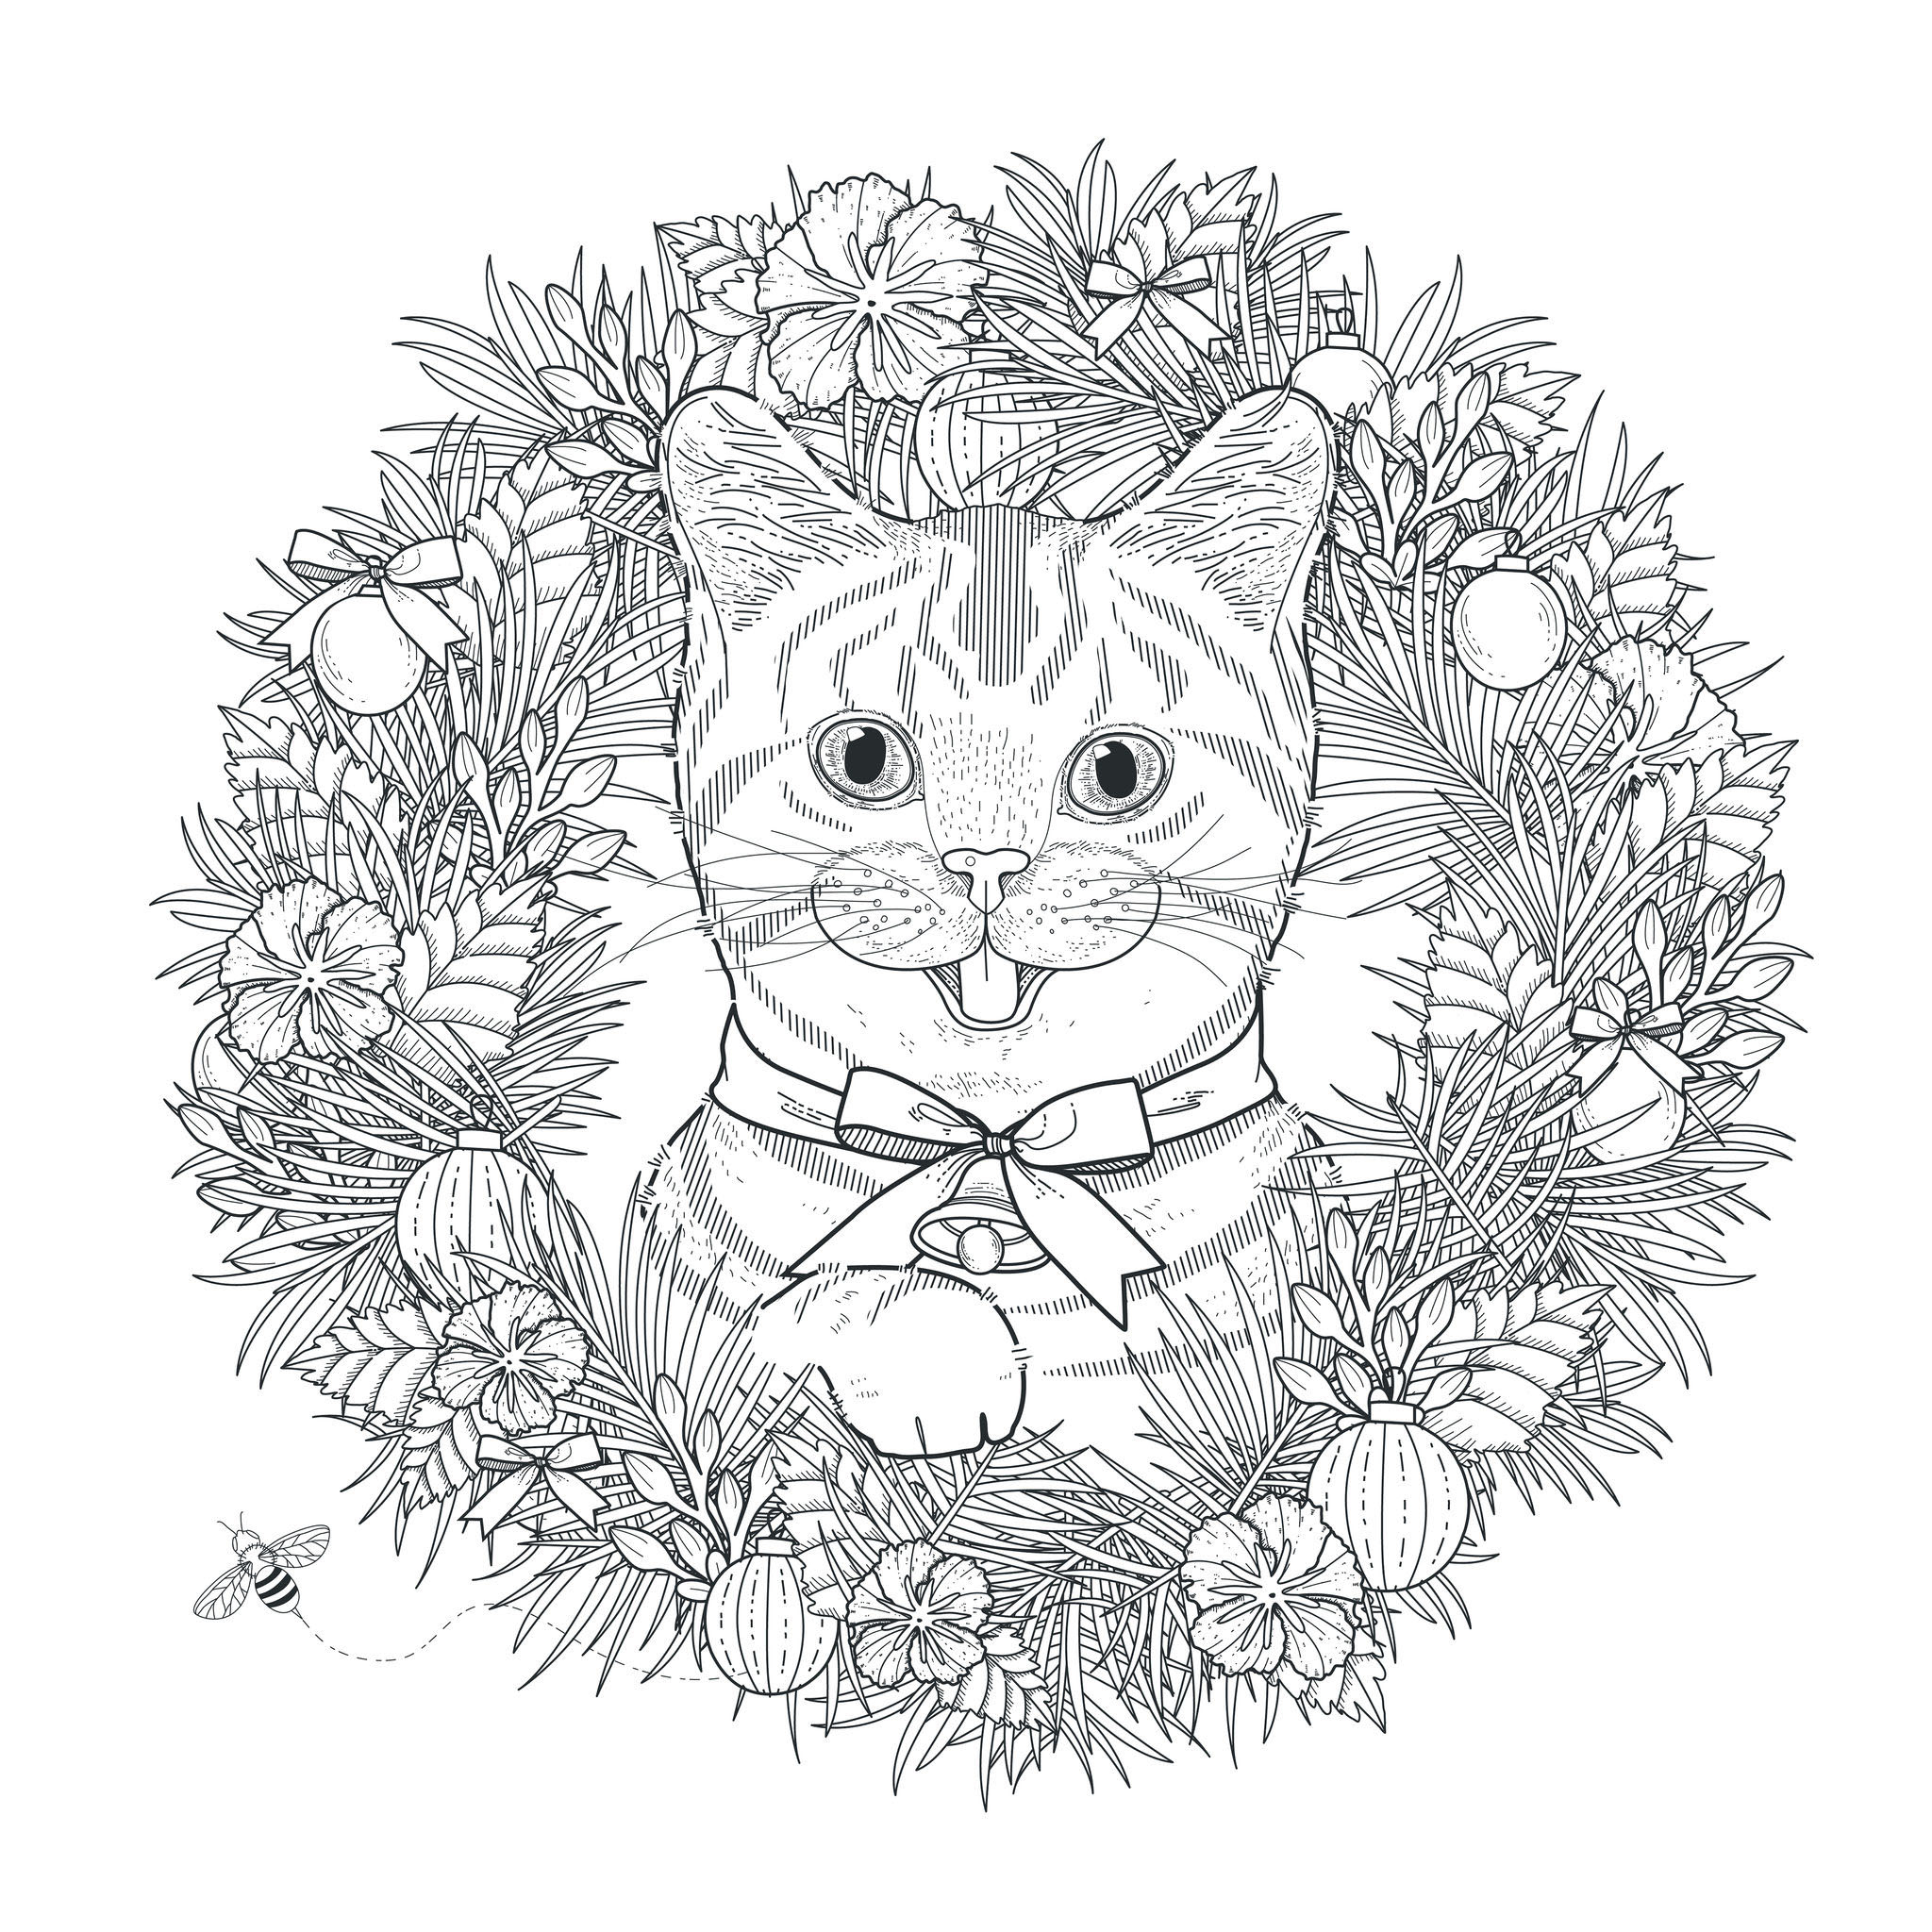 44695499 Adorable Kitty Coloring Page In Exquisite Style dedans Coloriage Adulte Mandala